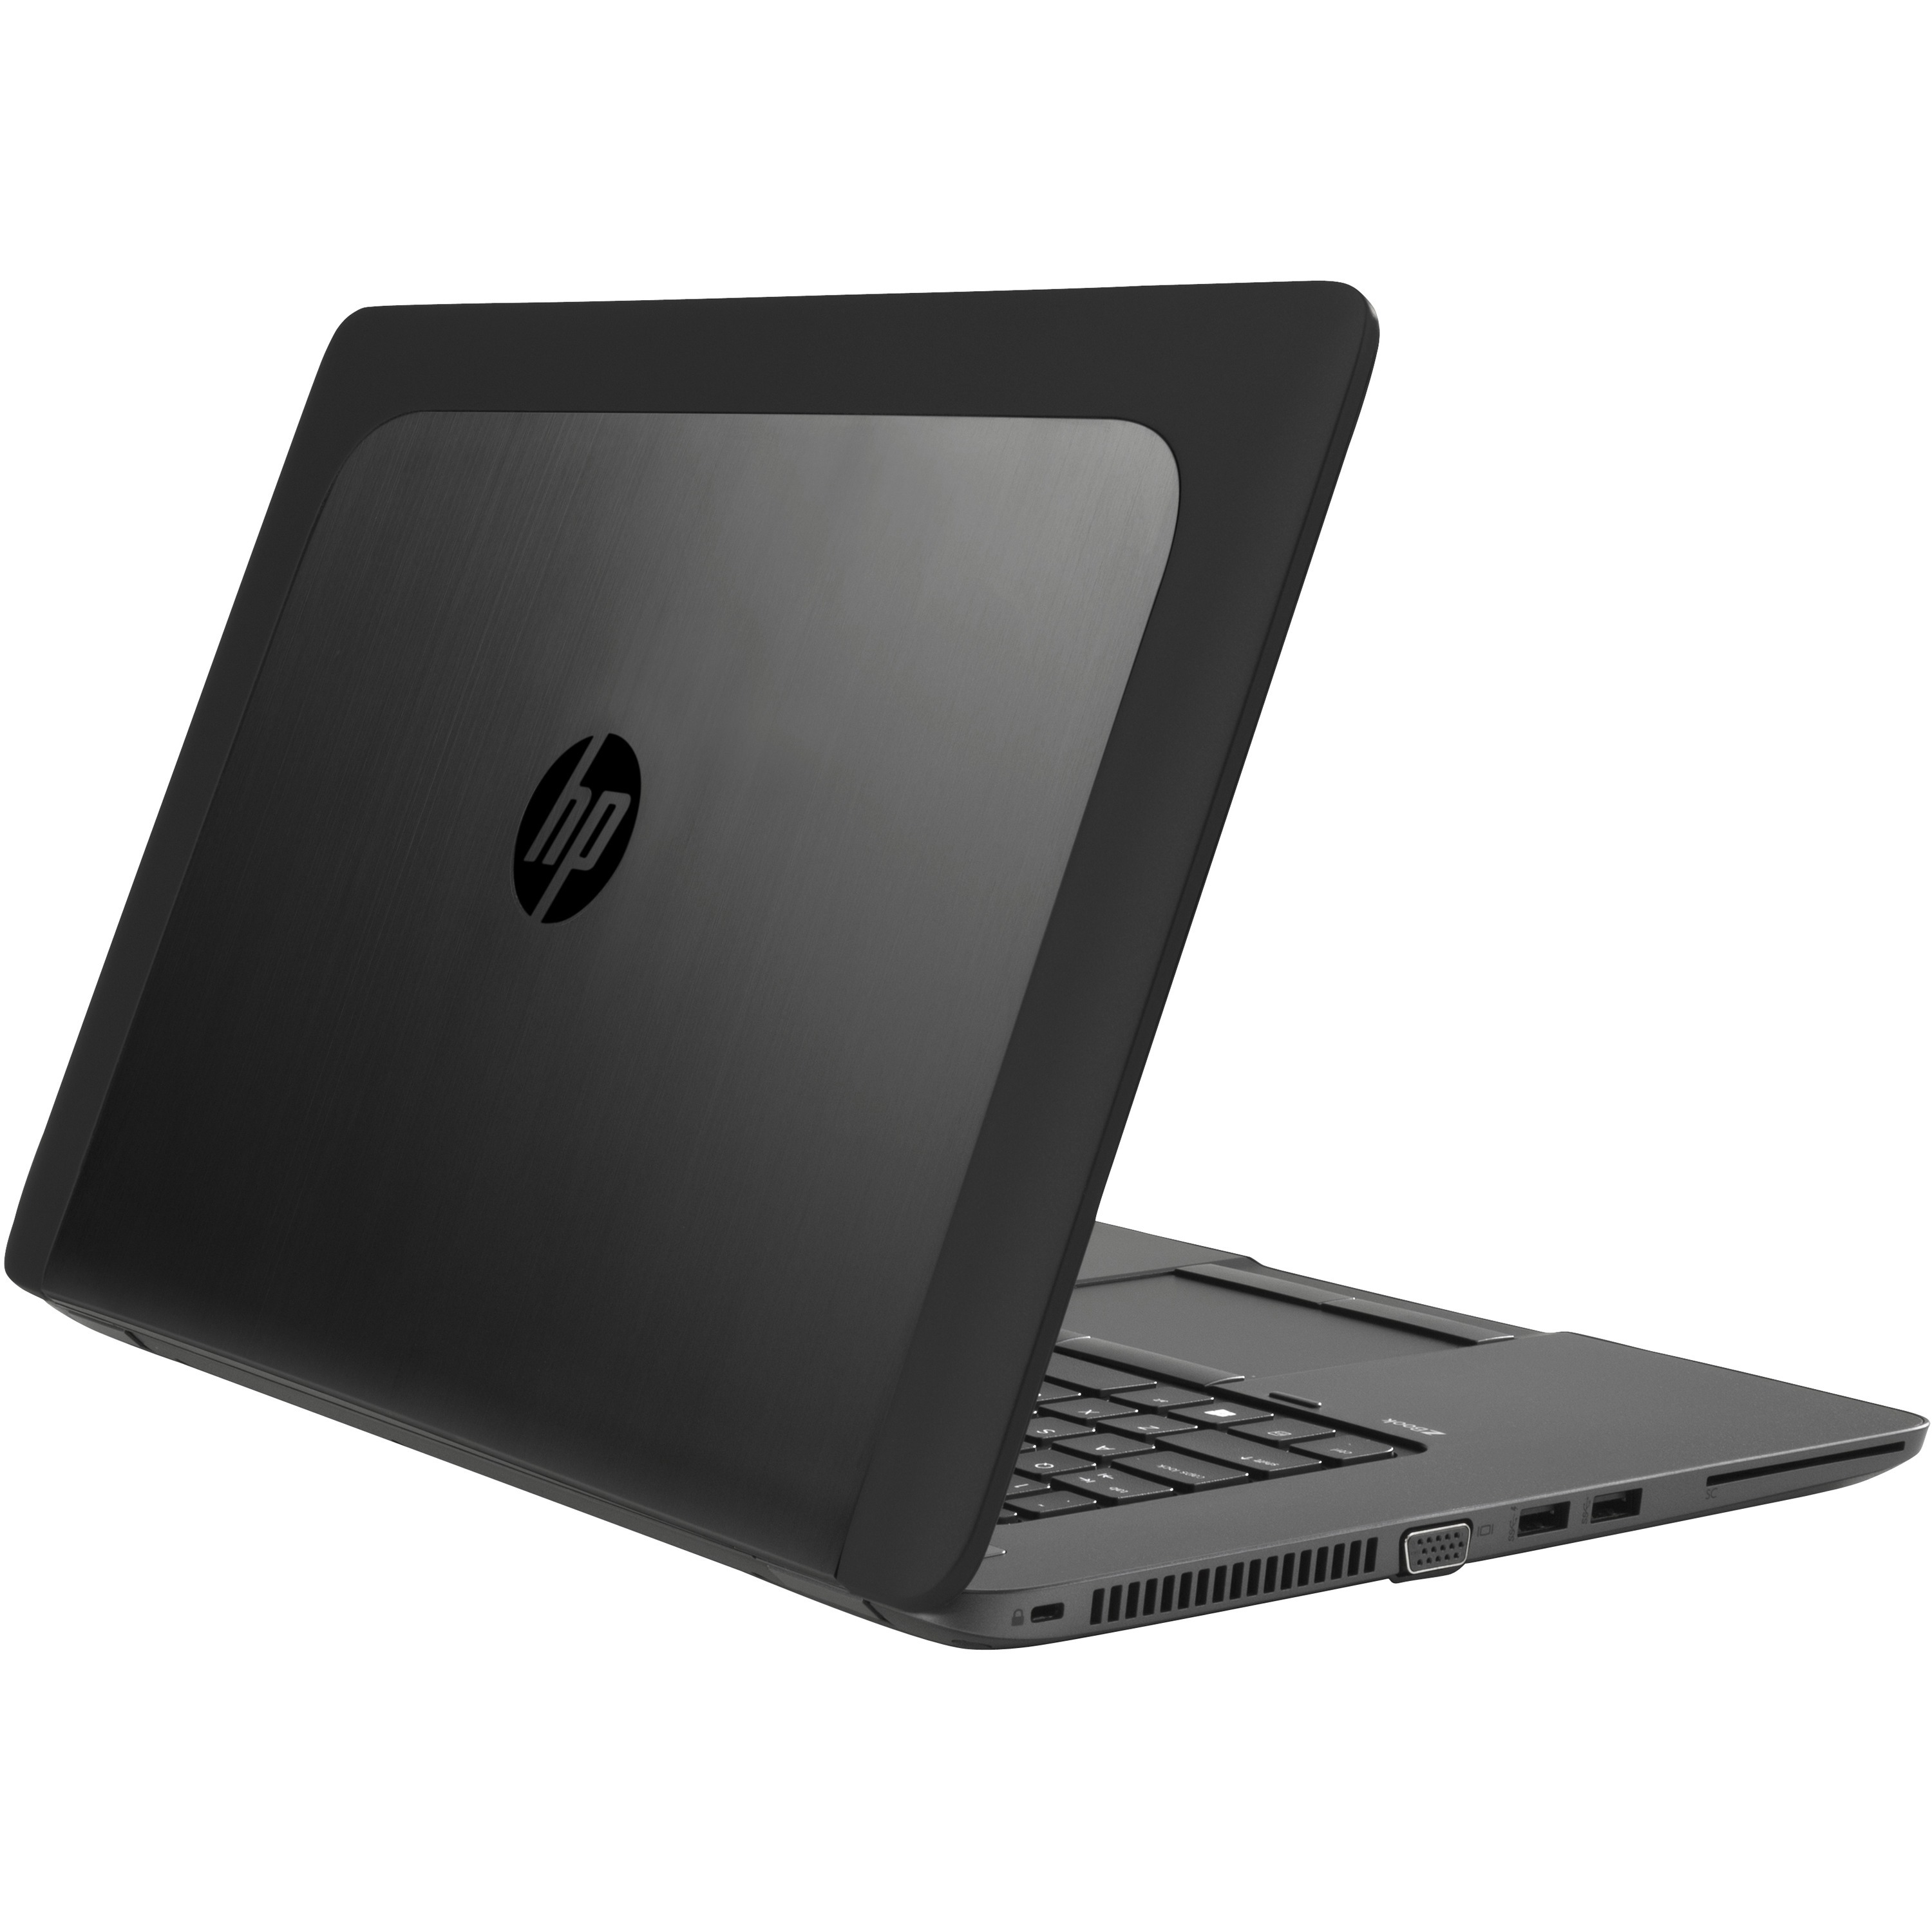 HP ZBook 15u G2 39.6 cm 15.6inch LED Notebook - Intel Core i5 i5-5200U 2.20 GHz - Black